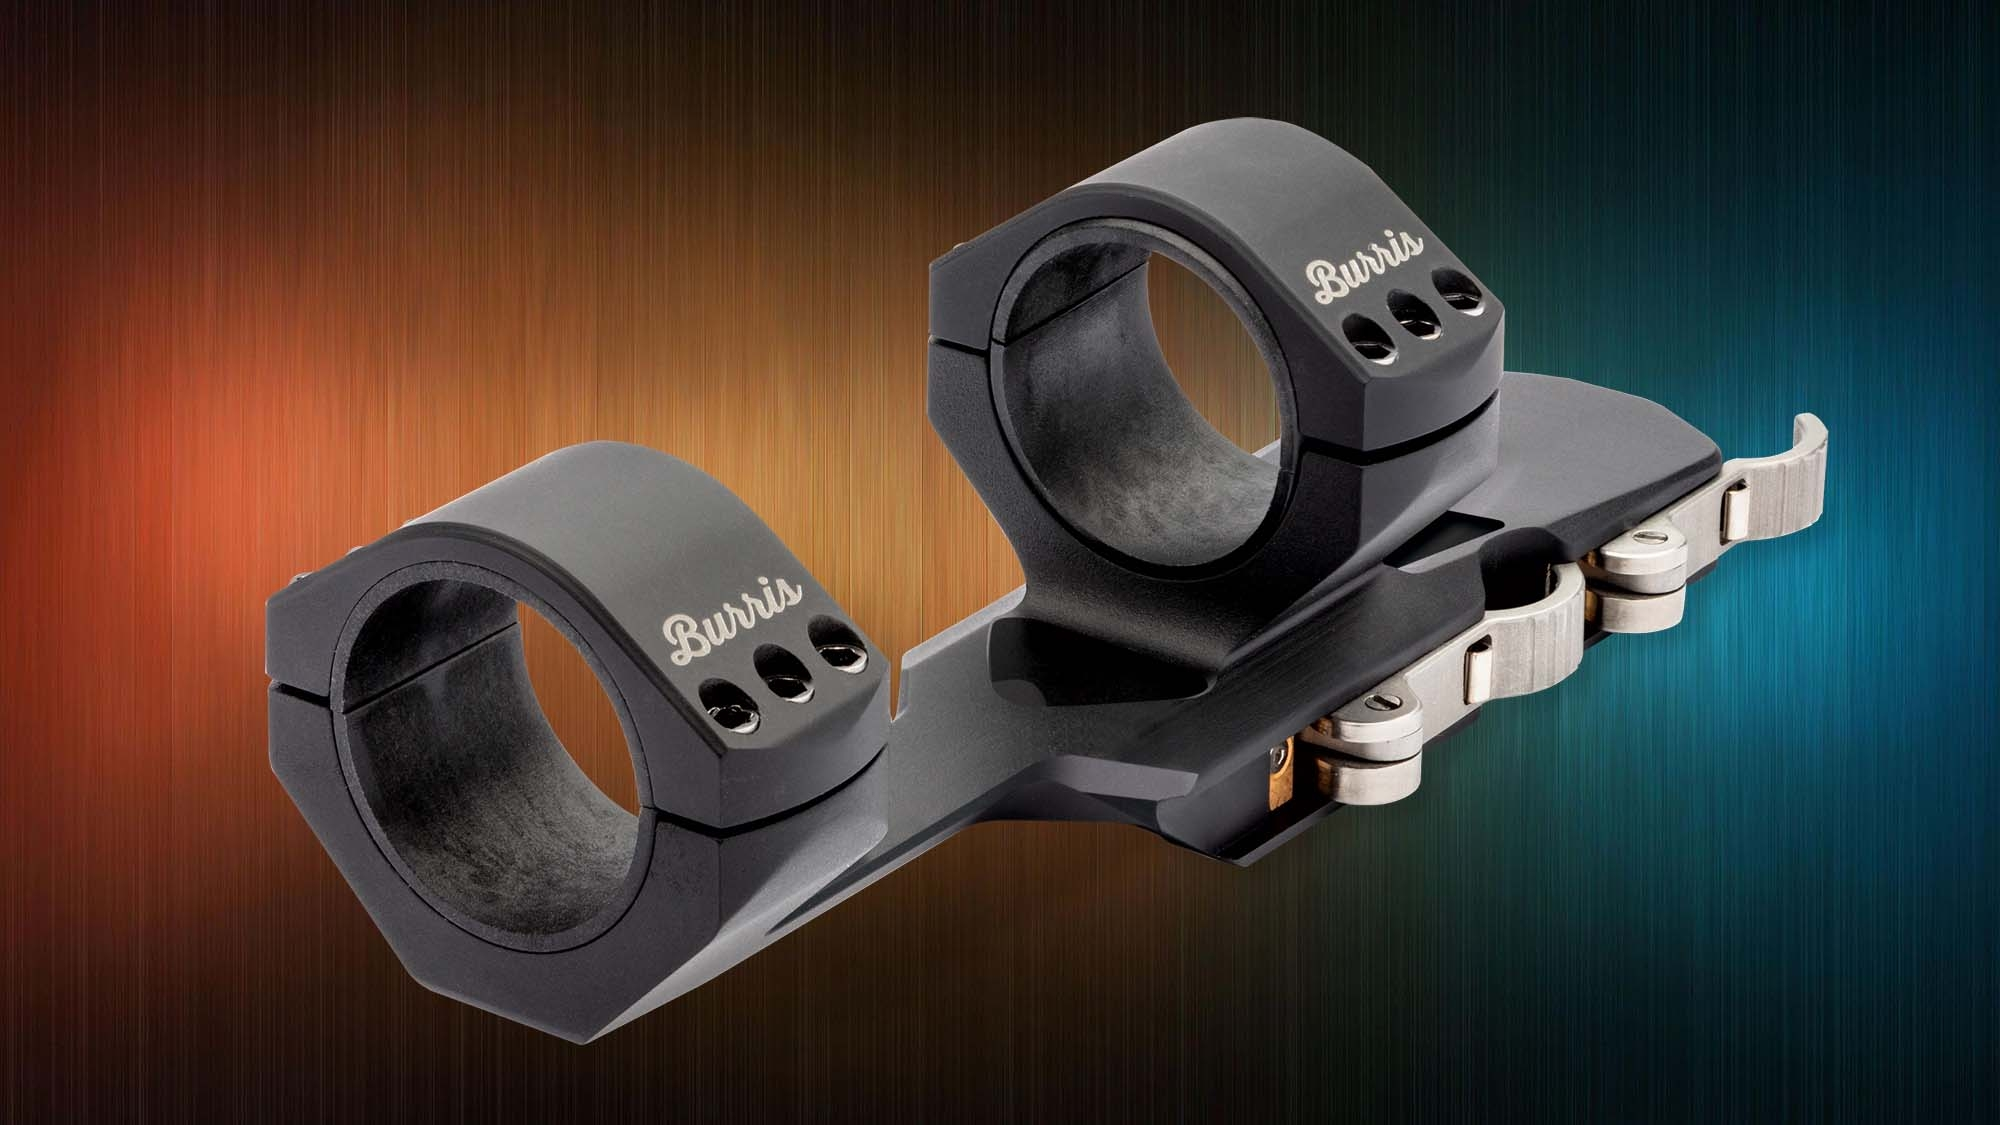 burris-optics: Burris Optics: neue Montage AR-Signature QD P.E.P.R.